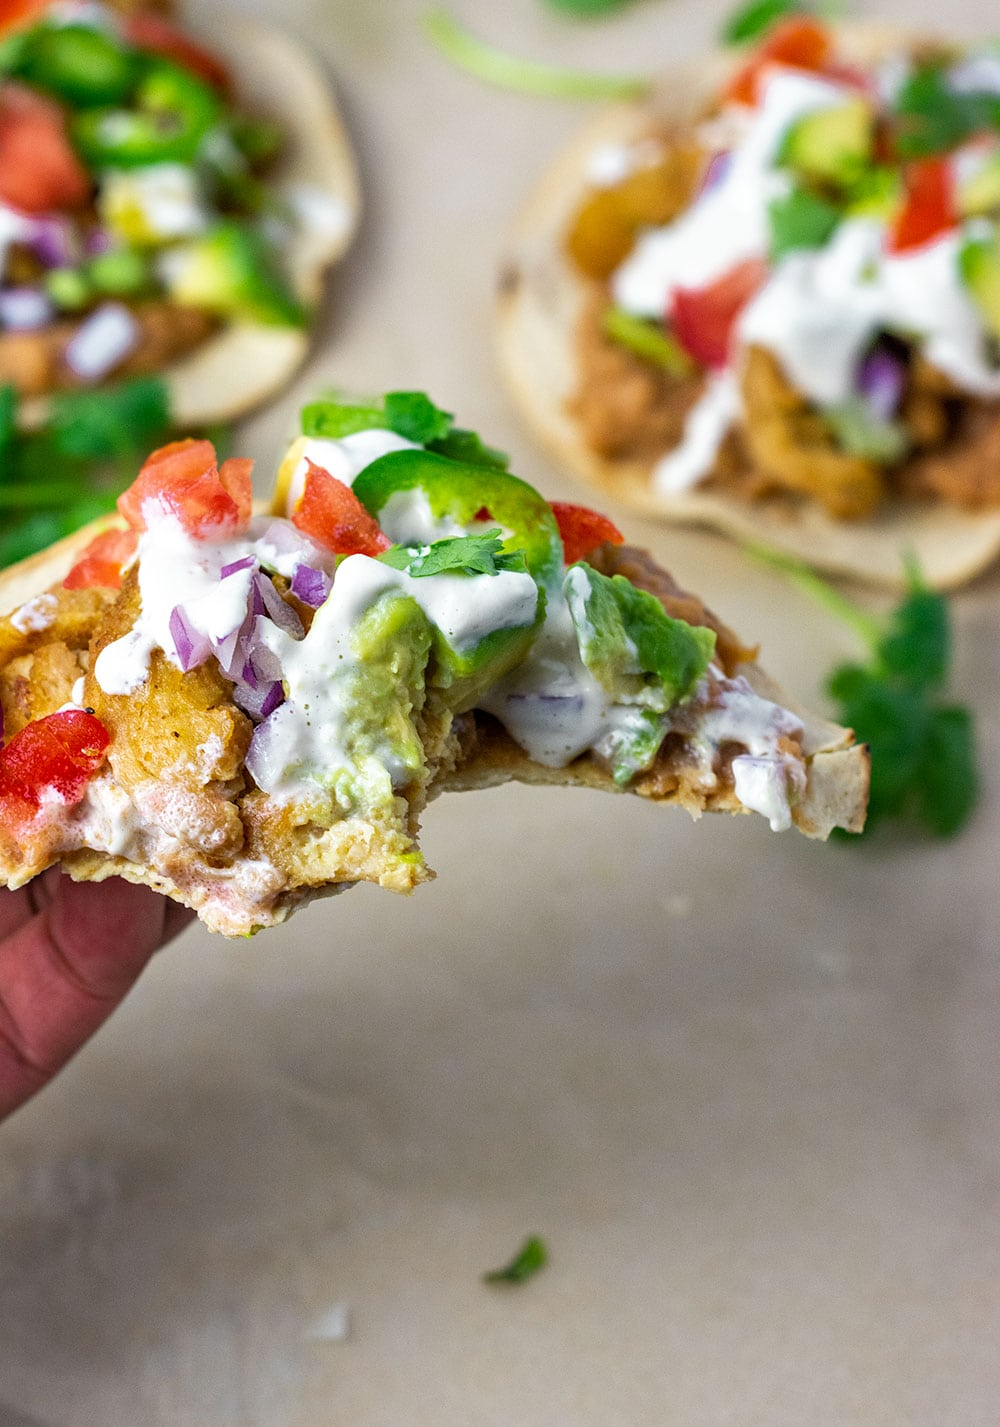 Vegan tostada recipe with refried beans, soy curls, avocado tomato, jalapeno, lettuce, cilantro. Photo showing a bite take from a tostada